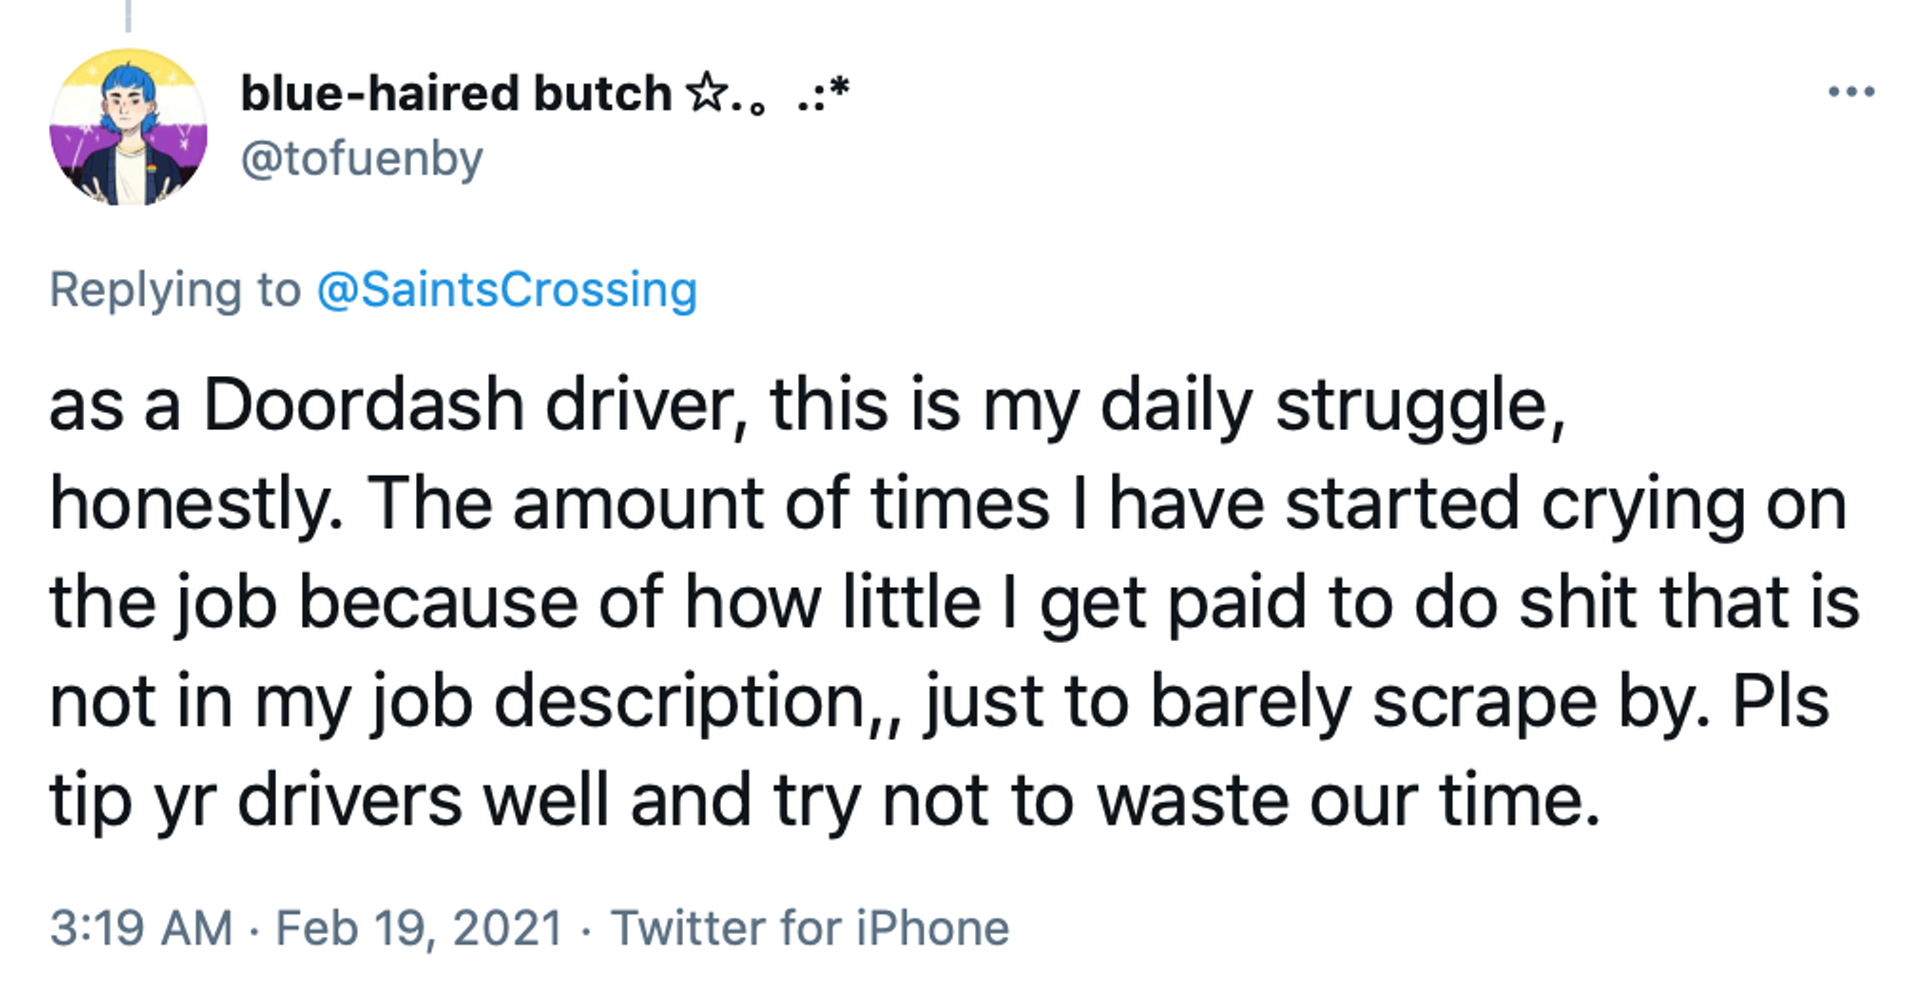 as a Doordash driver, this is my daily struggle, honestly. The amount of times I have started crying on the job because of how little I get paid to do shit that is not in my job description,, just to barely scrape by. Pls tip yr drivers well and try not to waste our time.